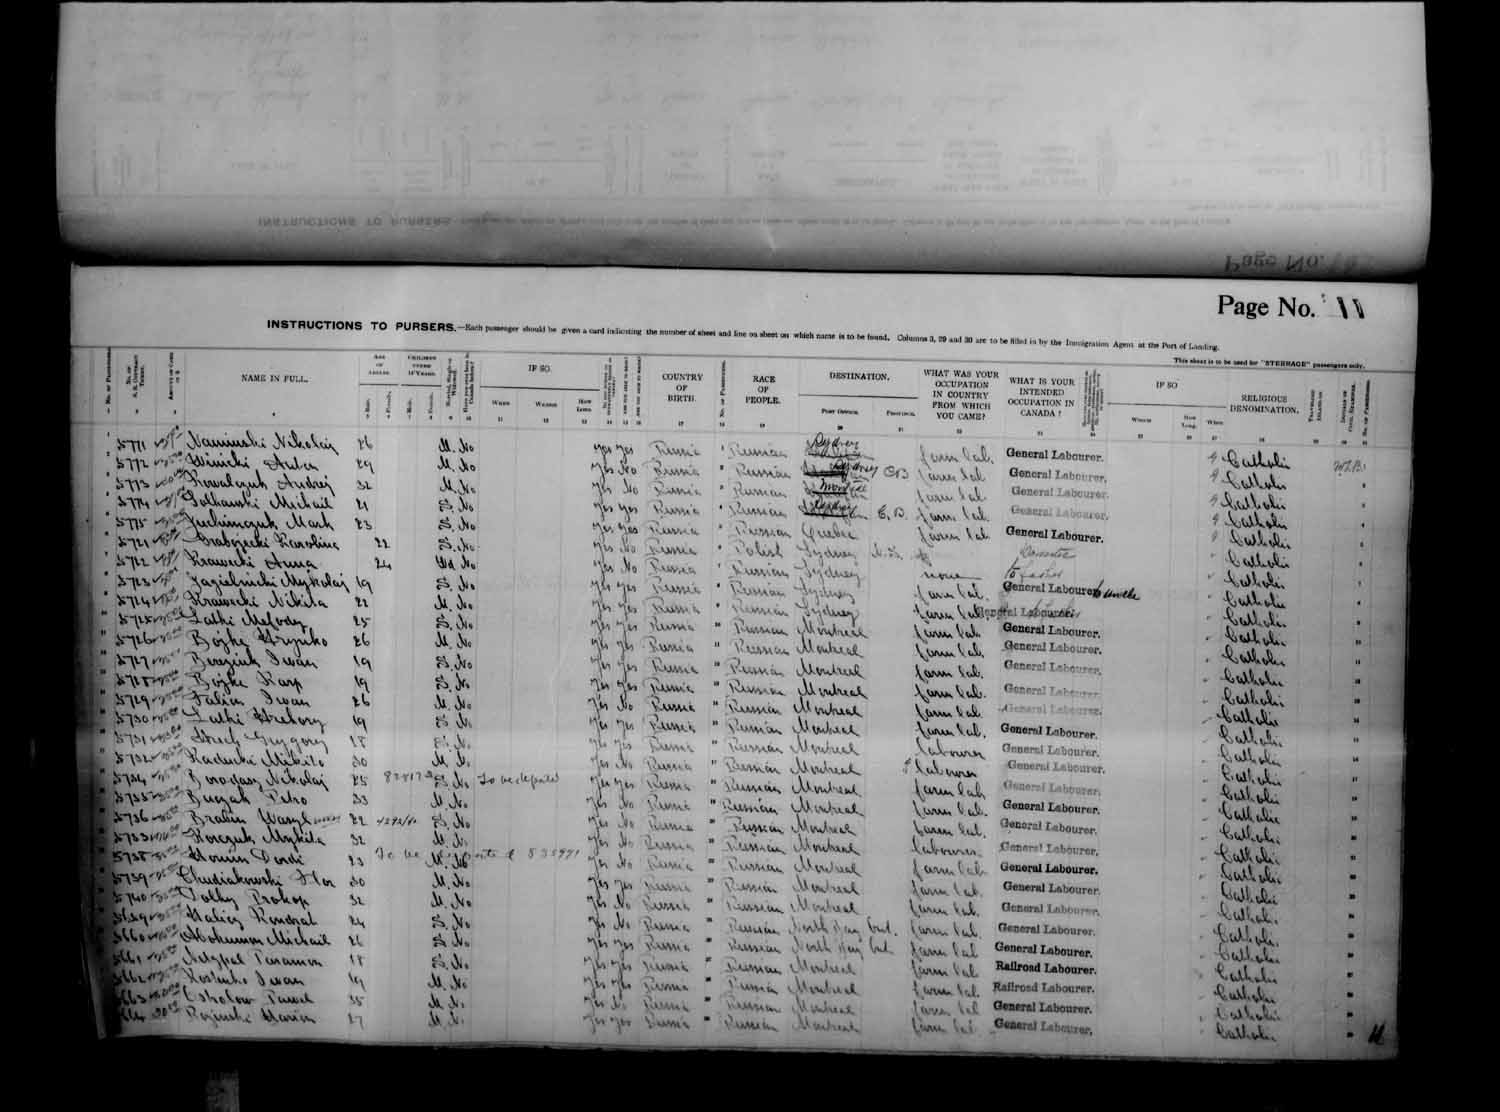 Digitized page of Passenger Lists for Image No.: e003686919